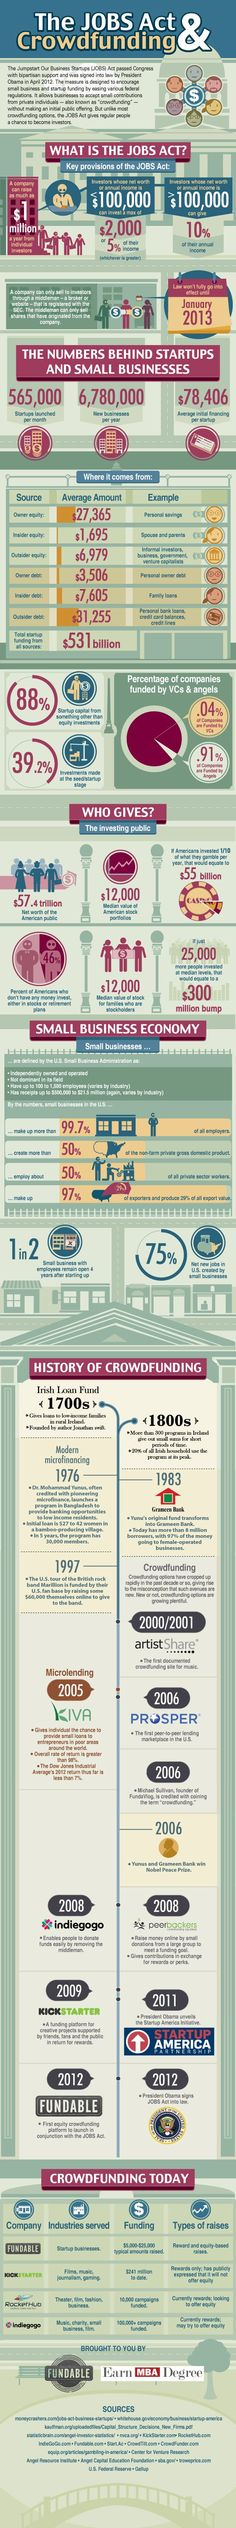 #INFOGRAPHIC: THE JOBS ACT & CROWDFUNDING